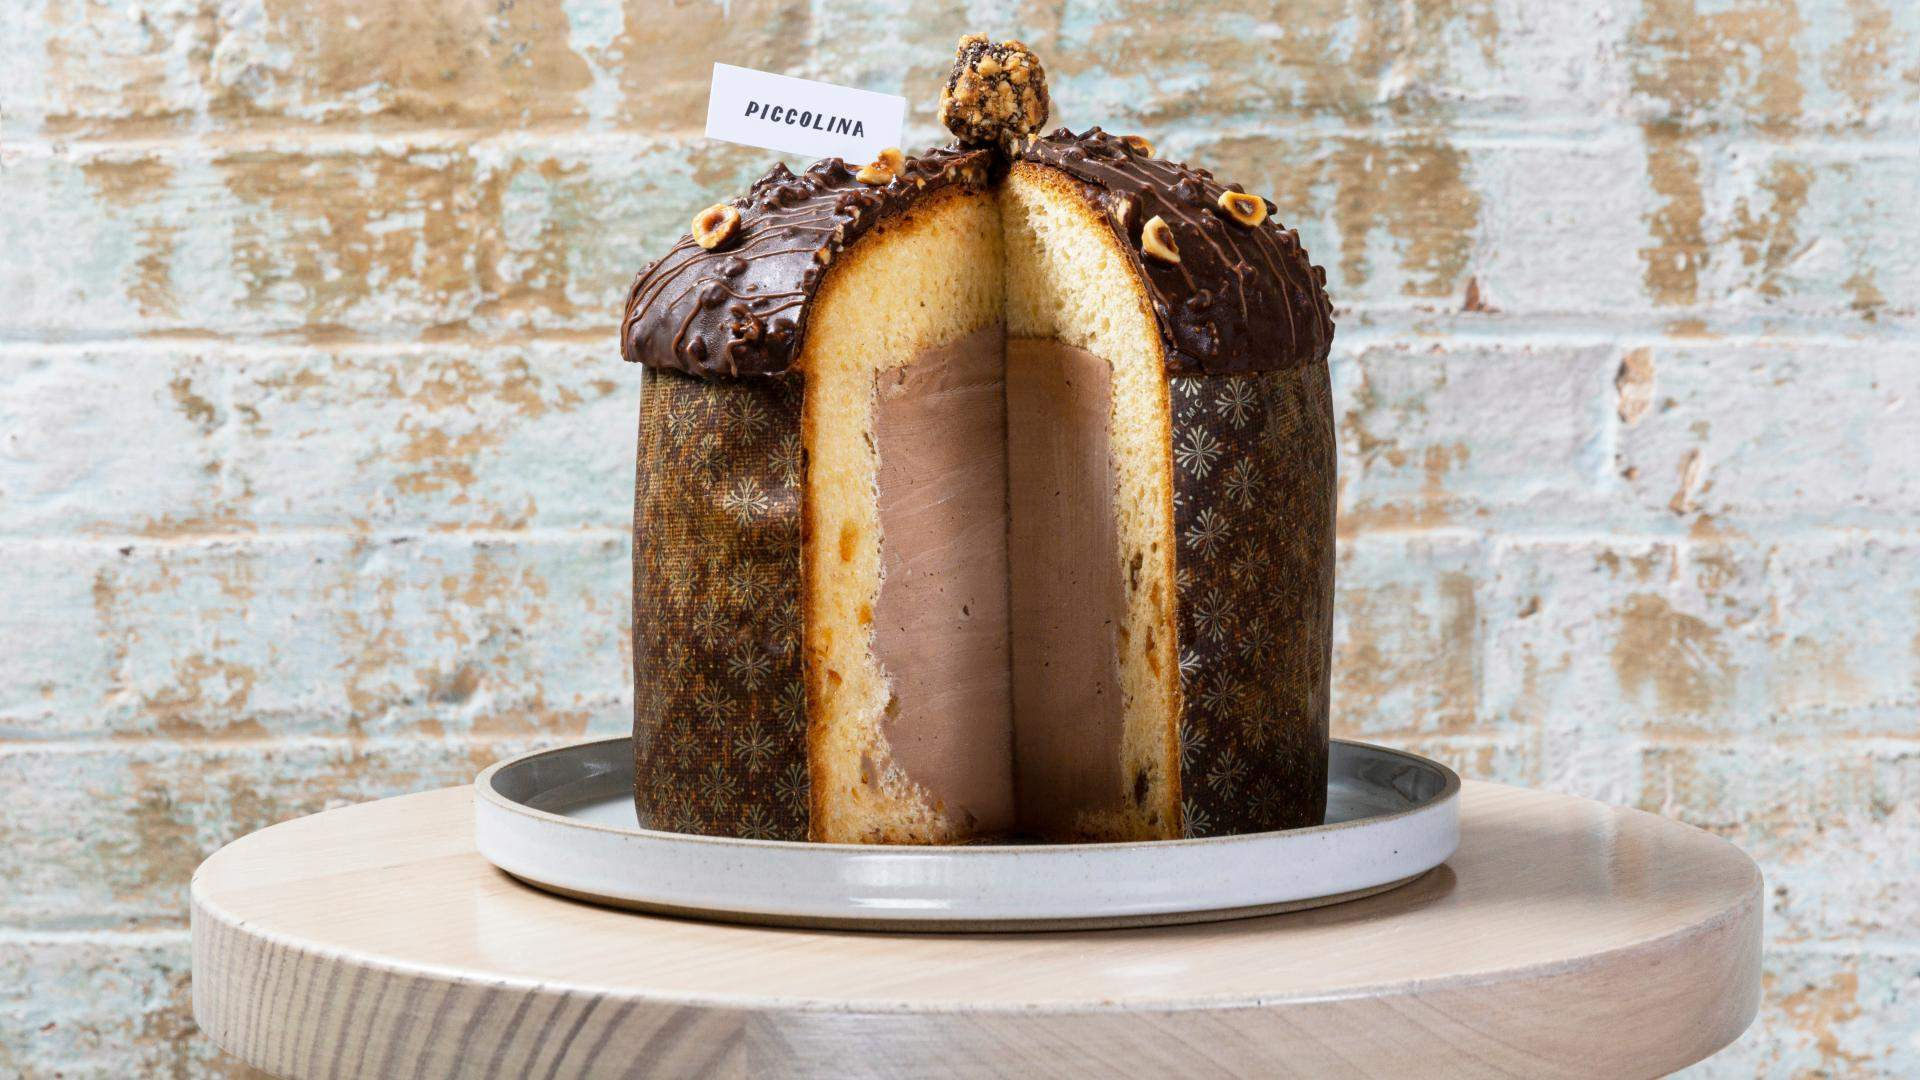 Piccolina Has Released a New Nutella Gelato-Stuffed Panettone Just in Time for Christmas